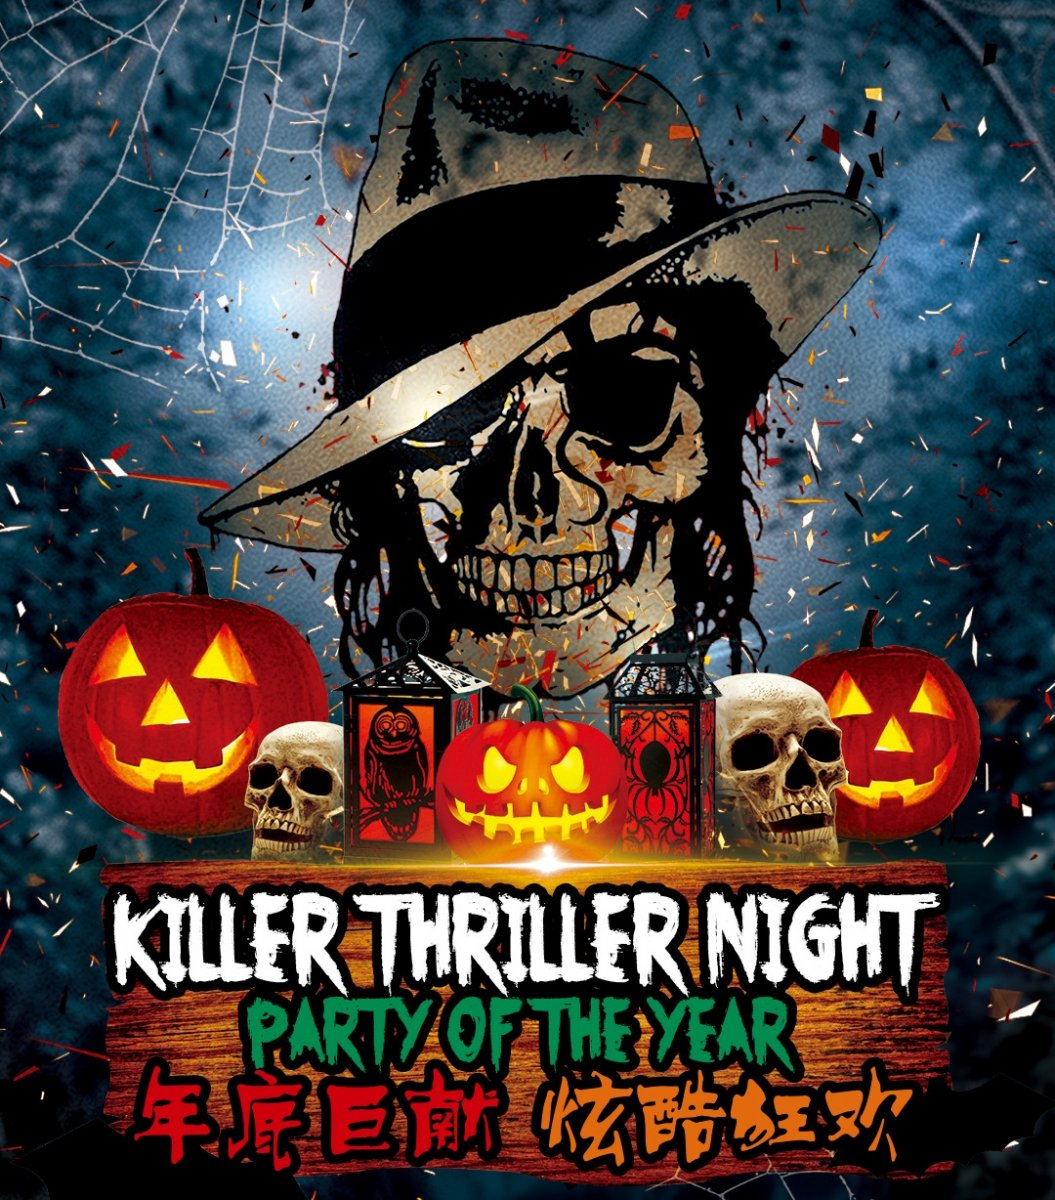 If Youu0027re Looking For A Solid Friday (October 28) Option, There Is Killer  Thriller Night At Centro With Free Horror Face Painting, A Best Costume ...